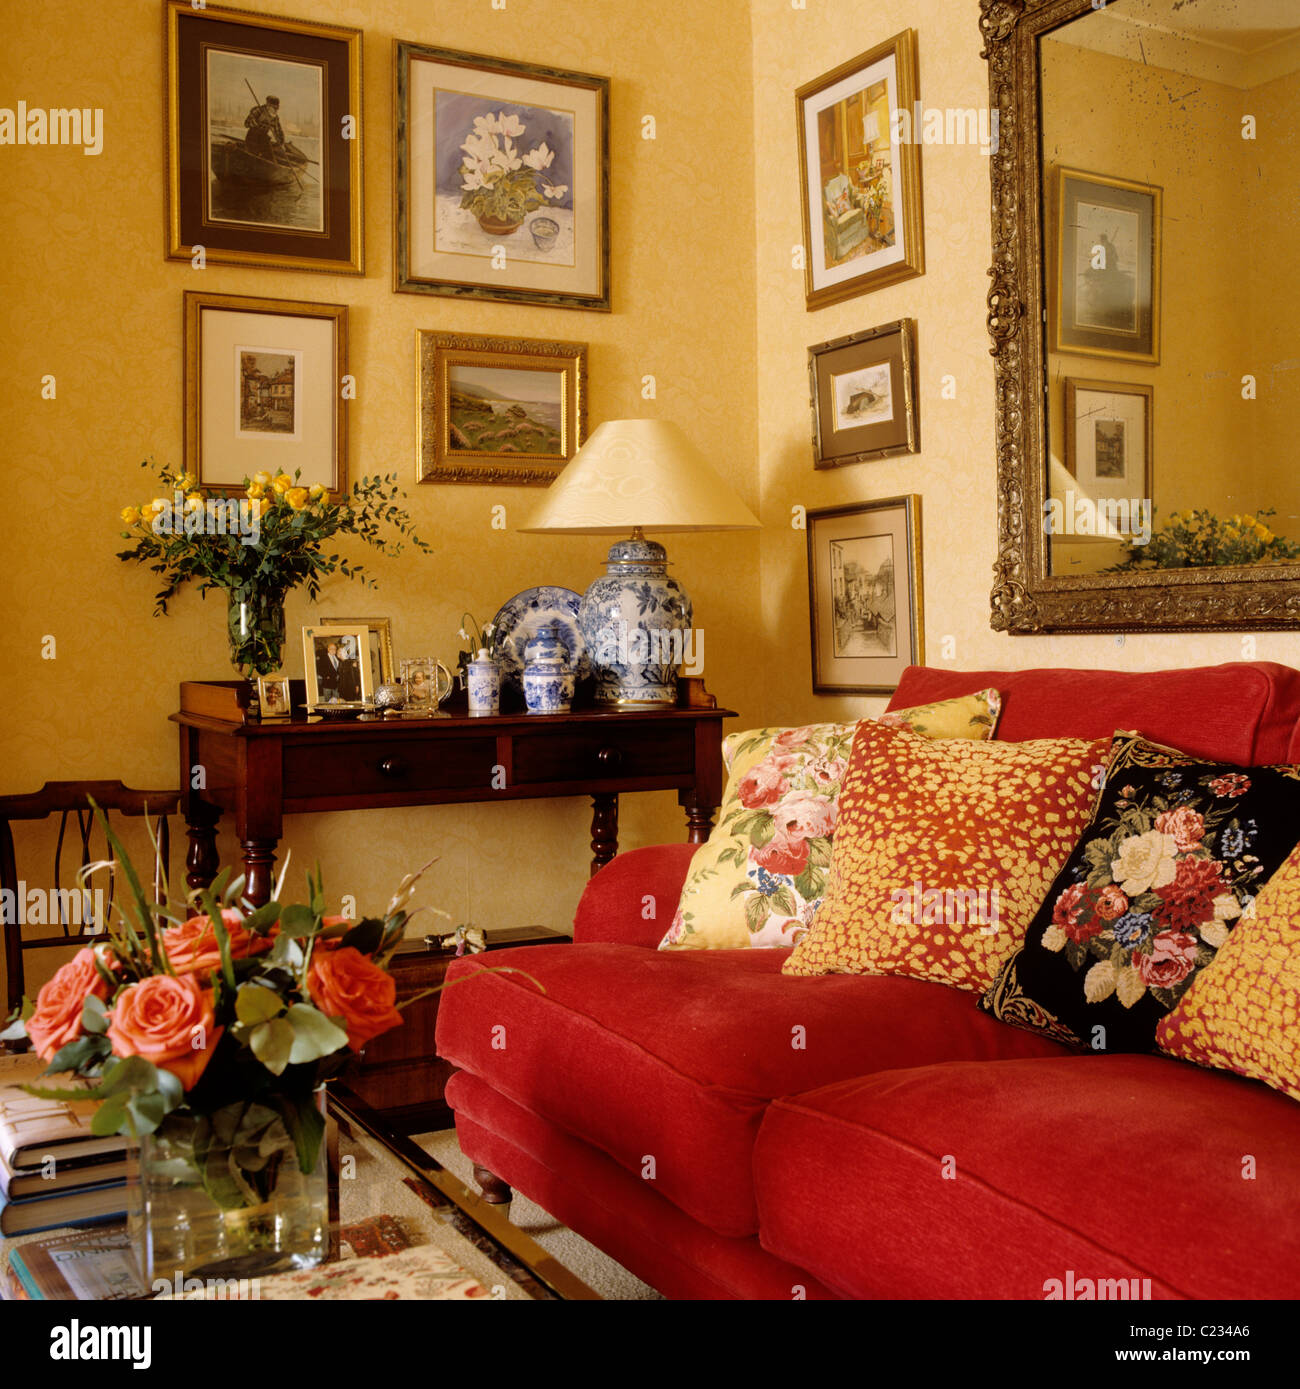 Patterned Cushions On Red Sofa In Living Room With A Traditional English Country Interior